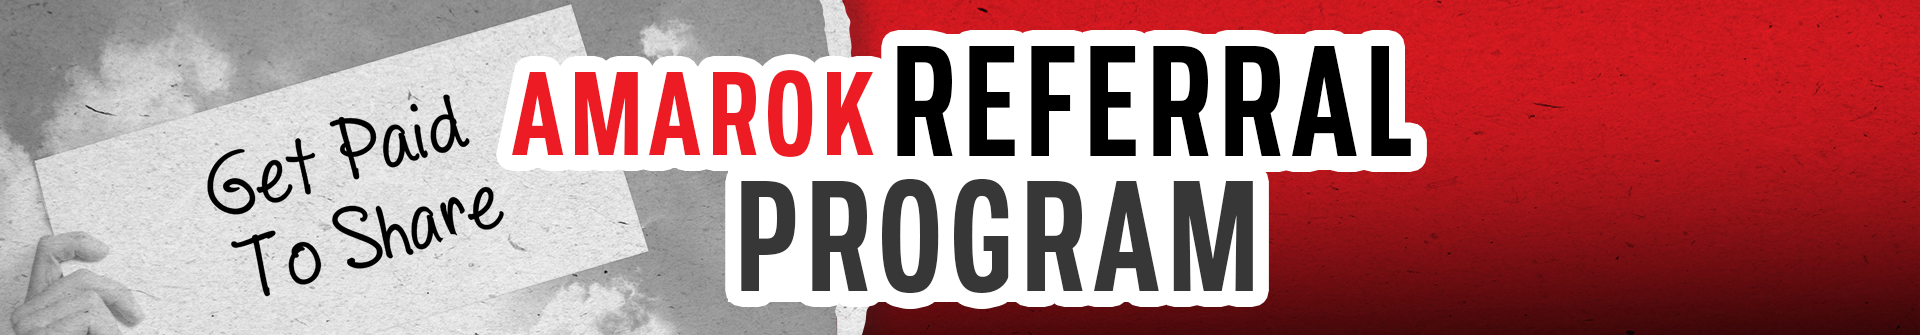 AMAROK Referral Program